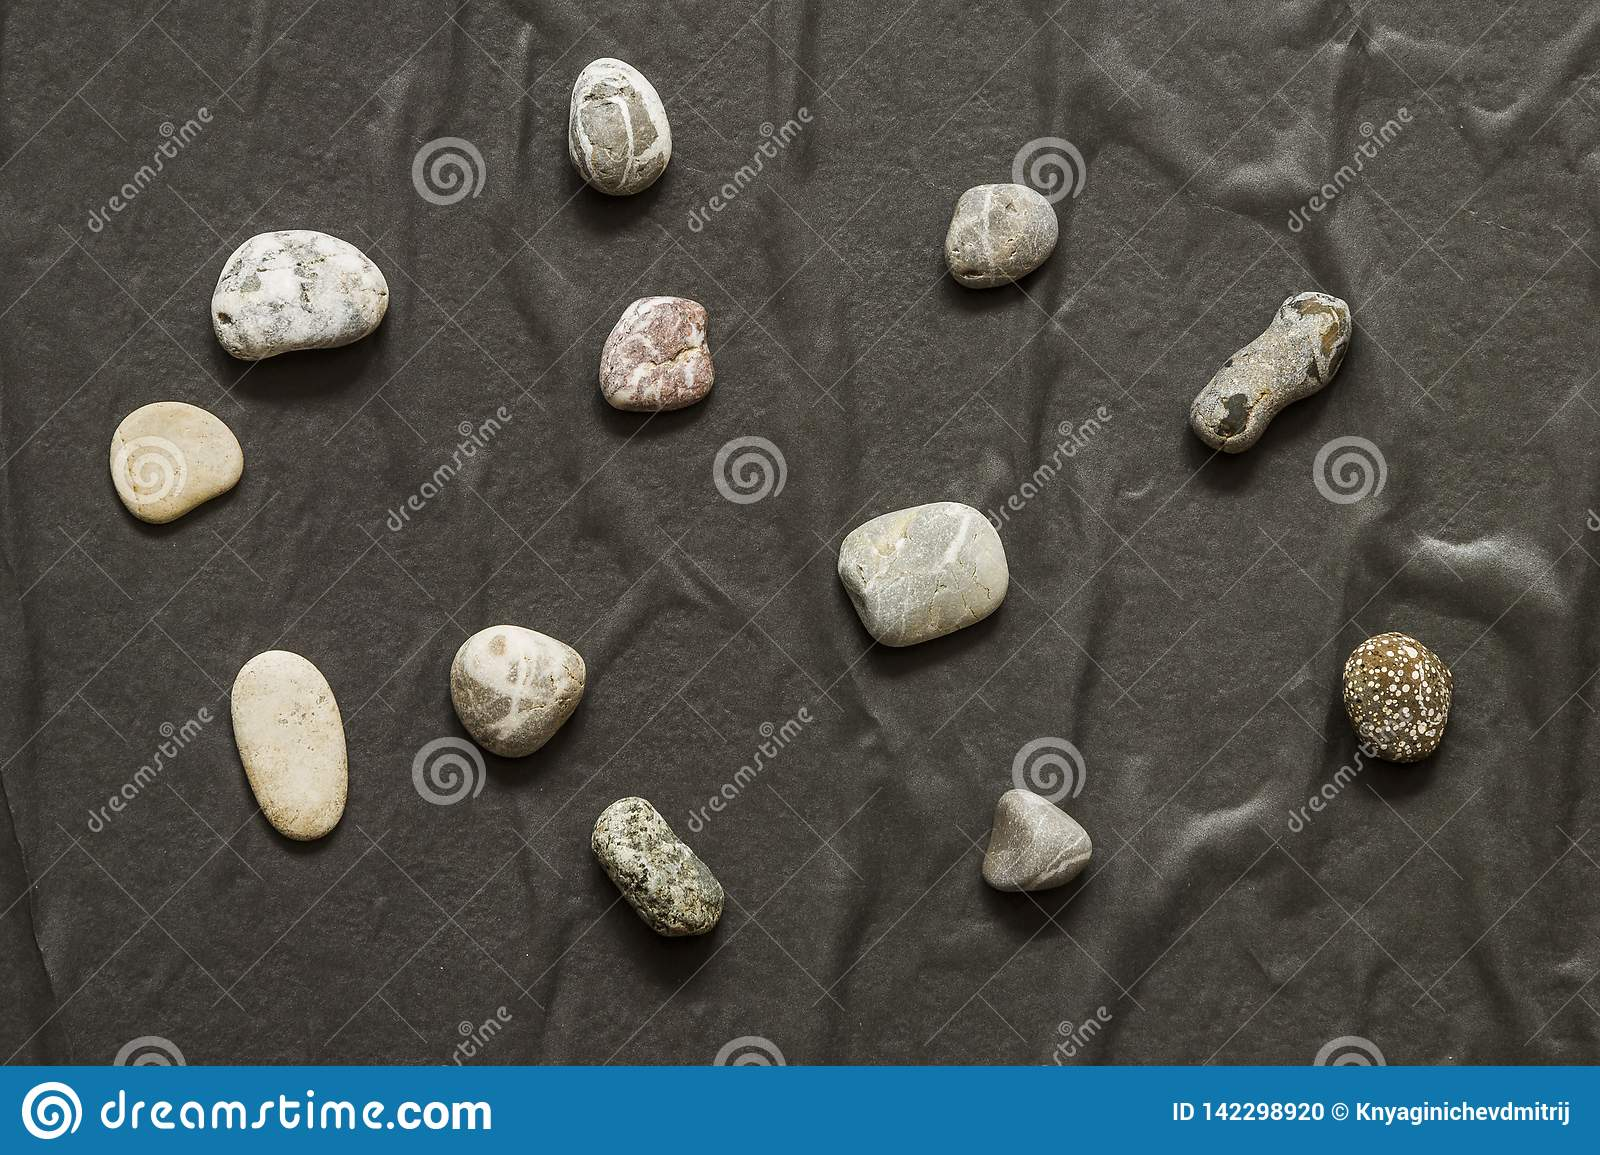 Several stones in a chaotic manner lie on a dark background